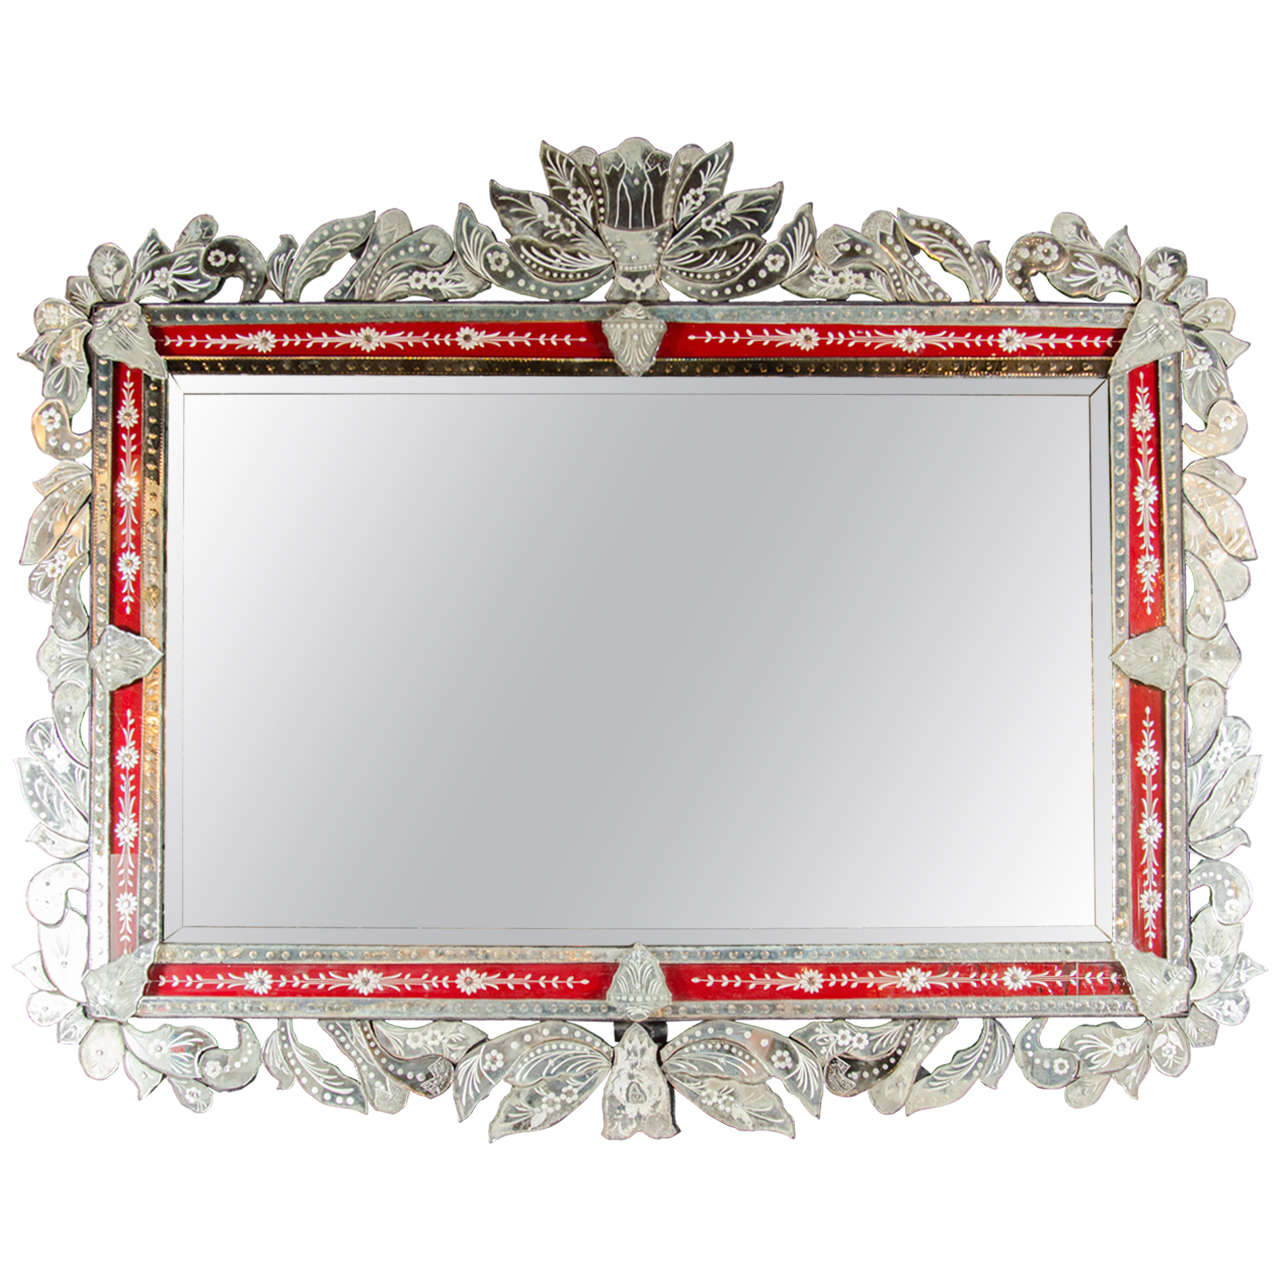 Spectacular Grand Venetian Mirror With Inset Ruby Red